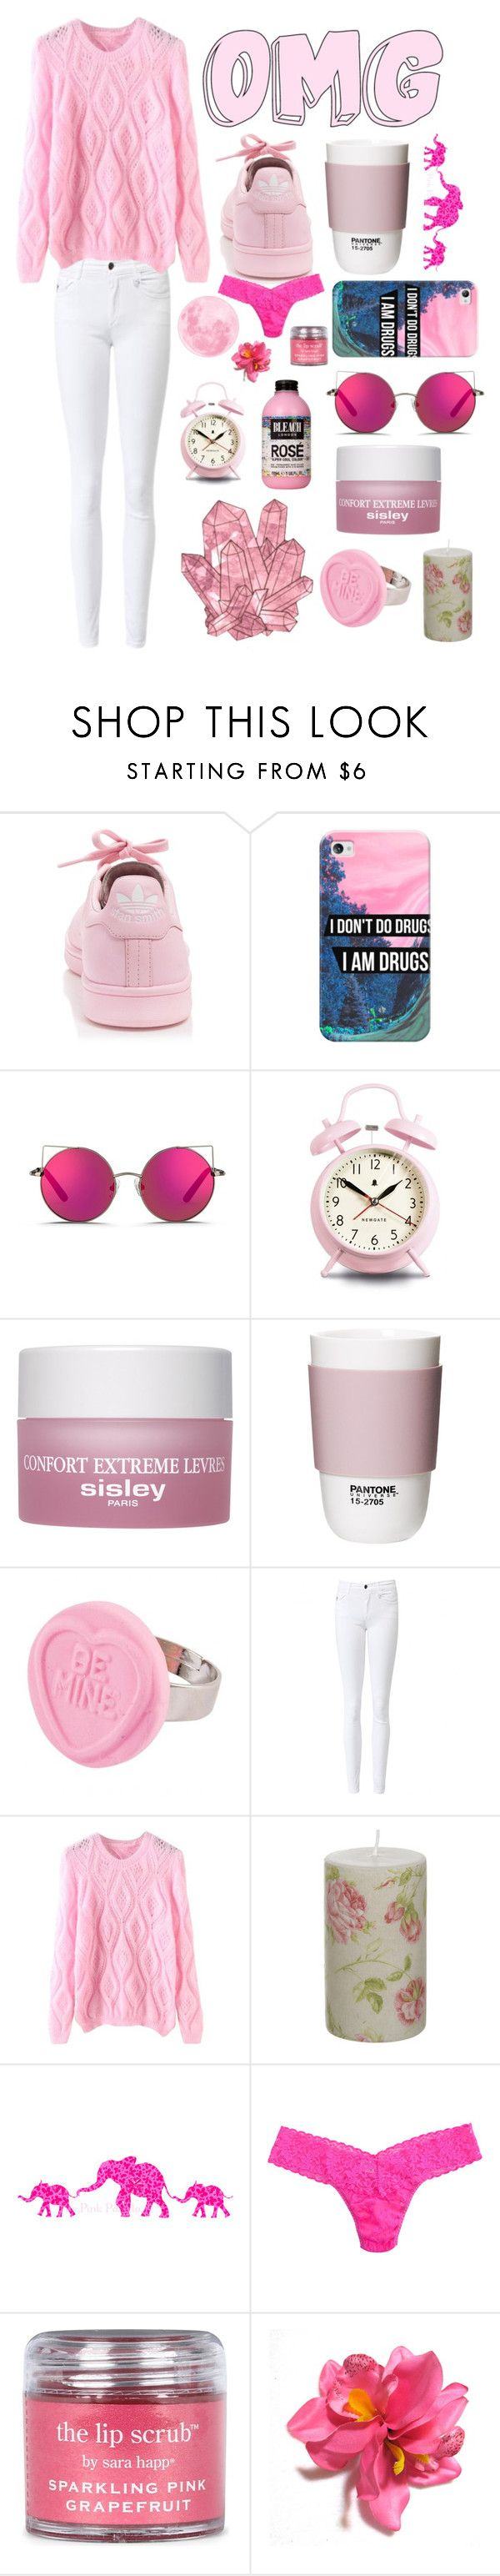 """hold on forever"" by divergirl ❤ liked on Polyvore featuring adidas, Casetify, Matthew Williamson, Newgate, Sisley Paris, ROOM COPENHAGEN, Hanky Panky, Sara Happ, song and matchbox20"